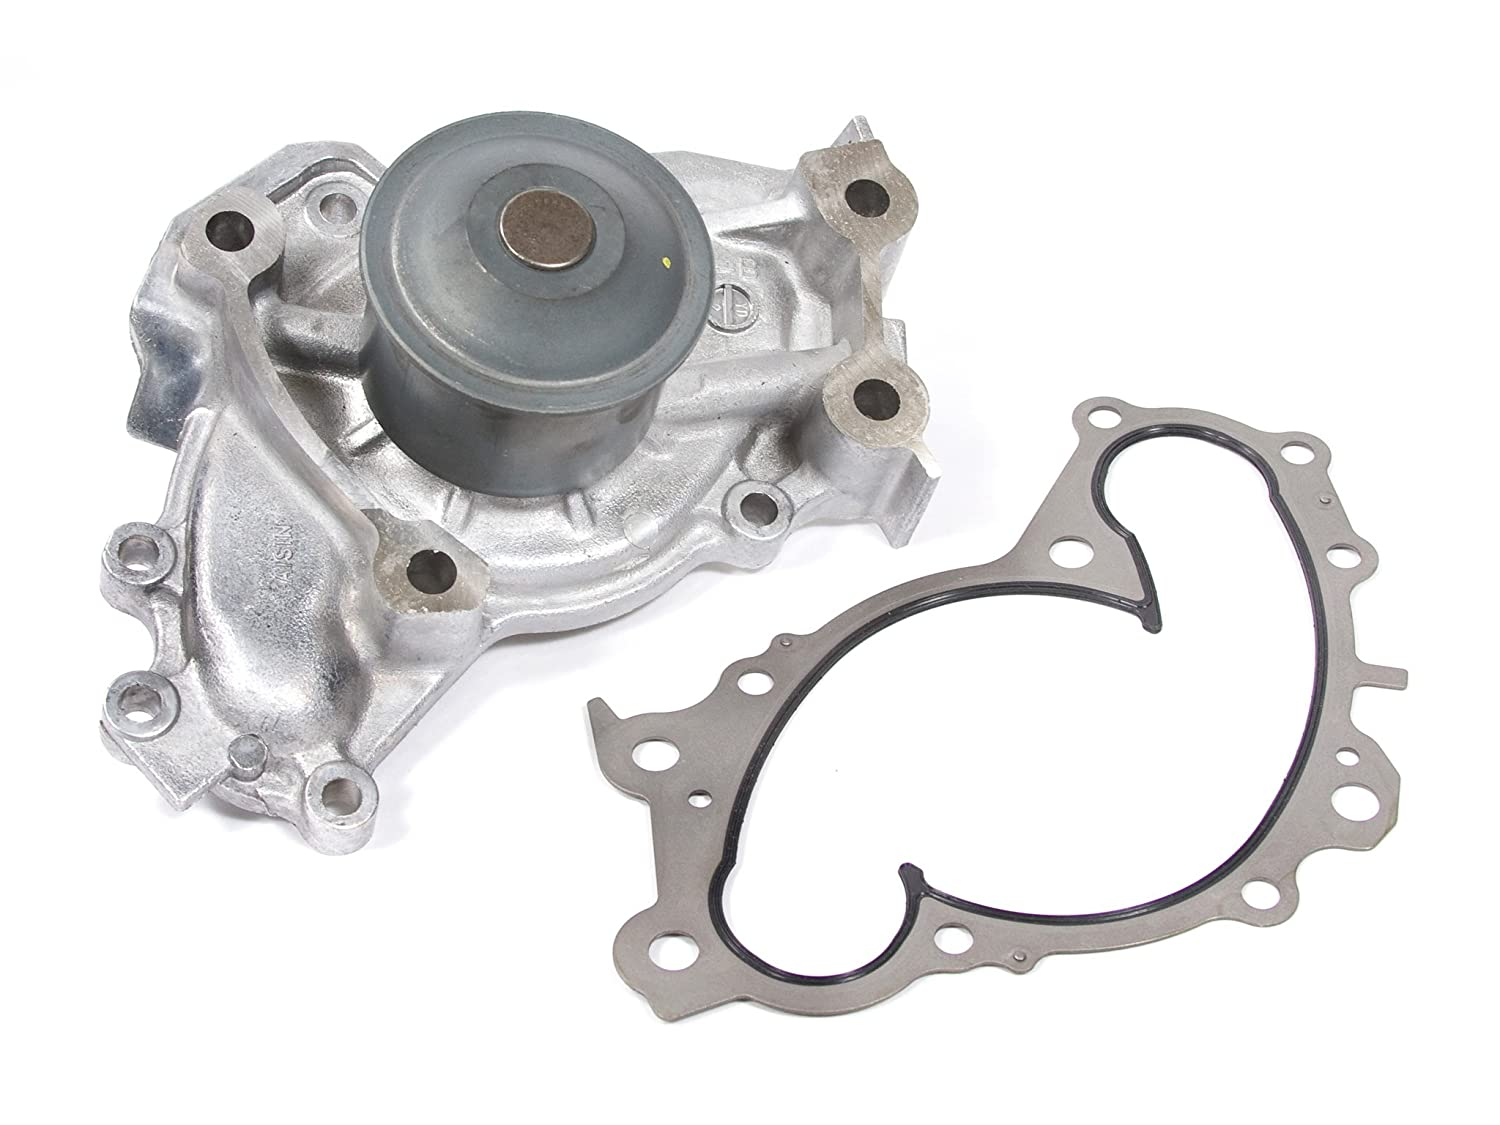 Evergreen TBK257AMHWPA Fits Toyota Lexus 3.0 1MZFE 3.3 3MZFE Timing Belt Kit AISIN Water Pump Evergreen Parts And Components